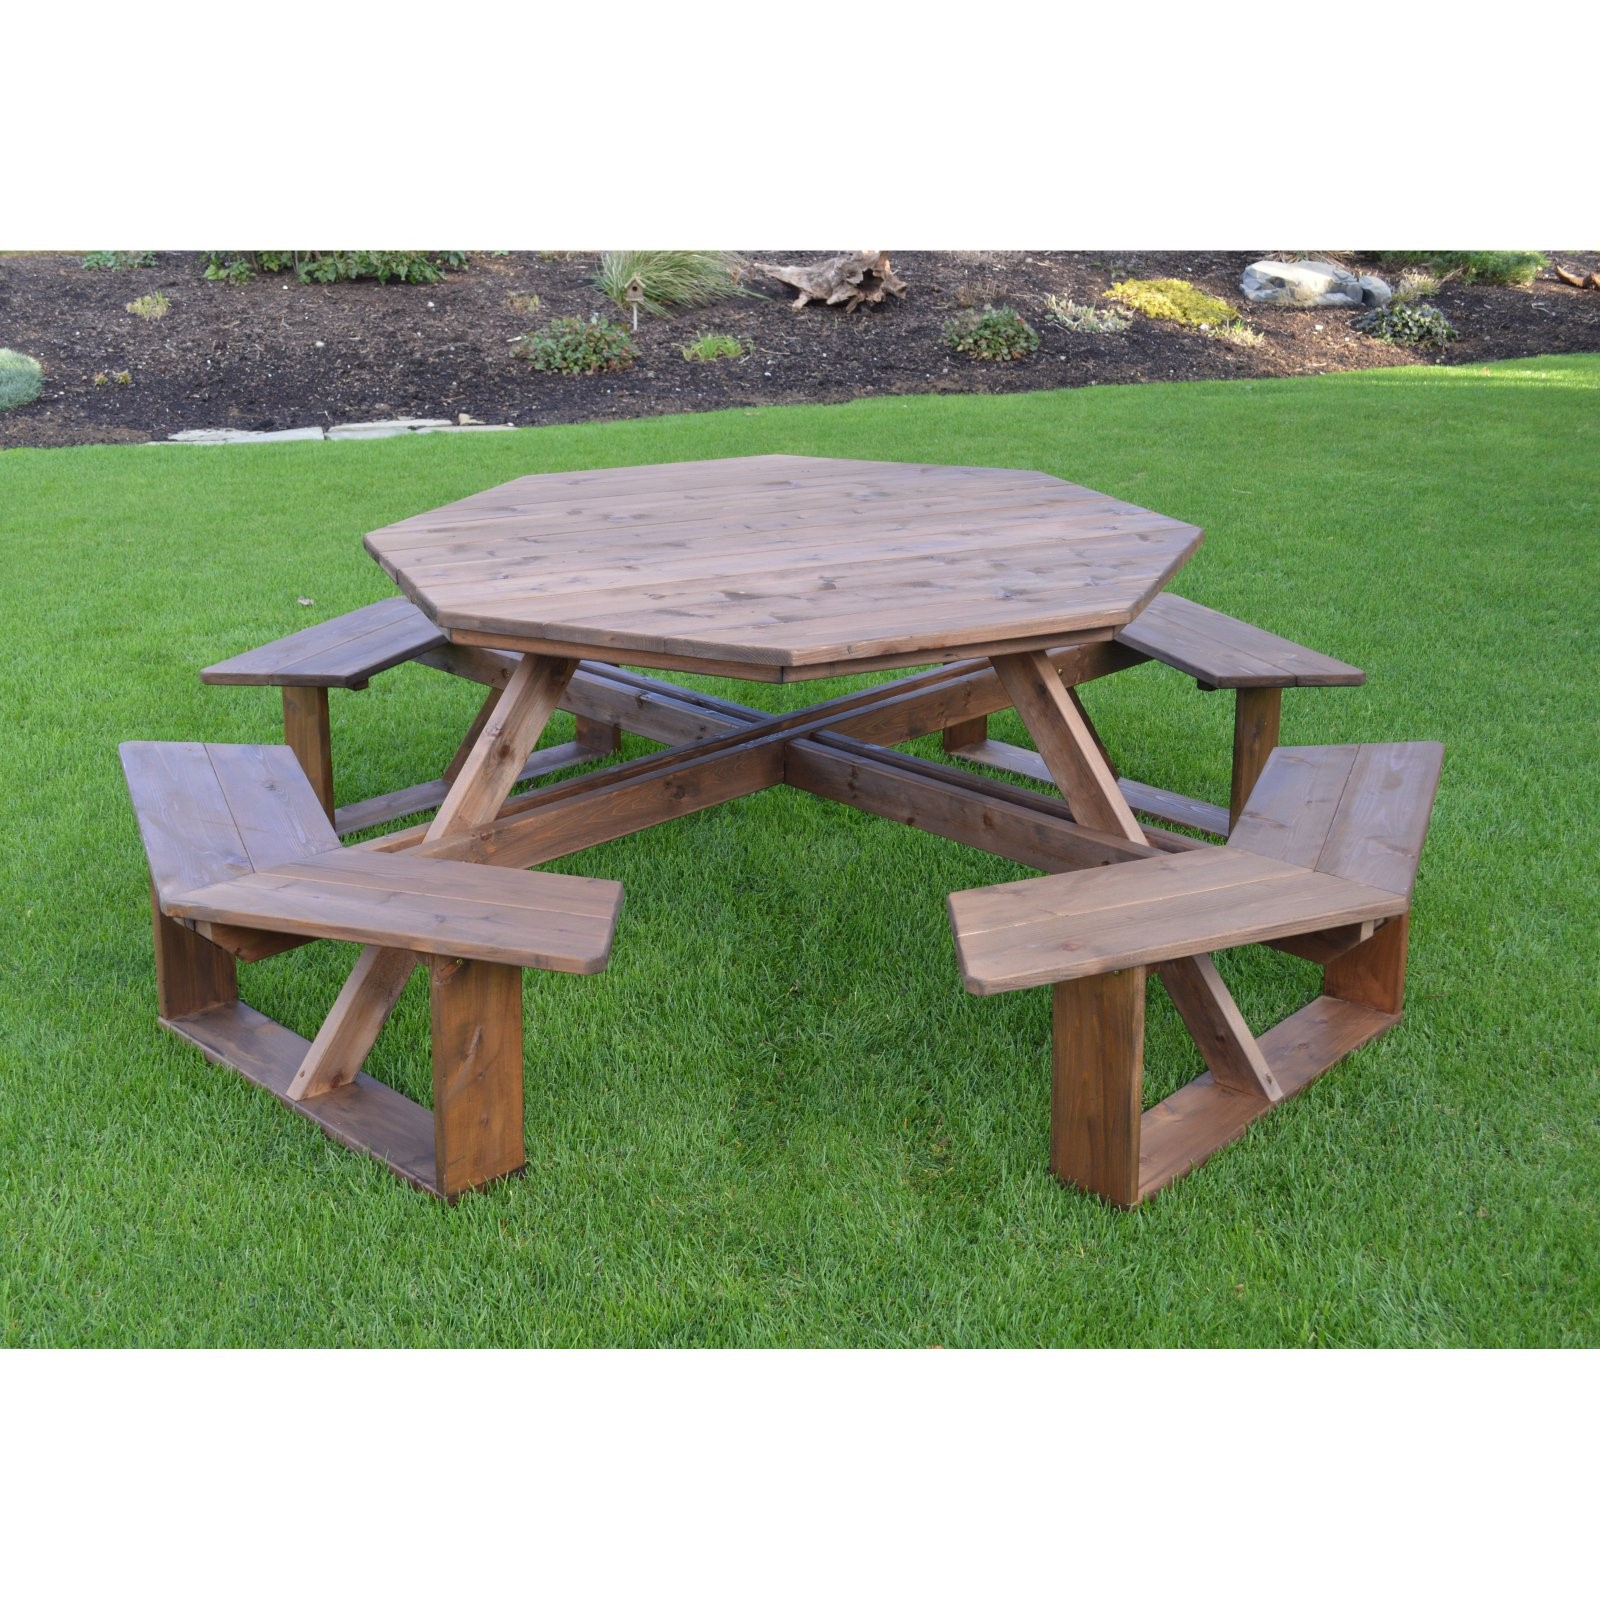 A & L Furniture 54 in. Octagon Walk-In Wood Picnic Table with Optional Umbrella Hole by A and L Furniture Co